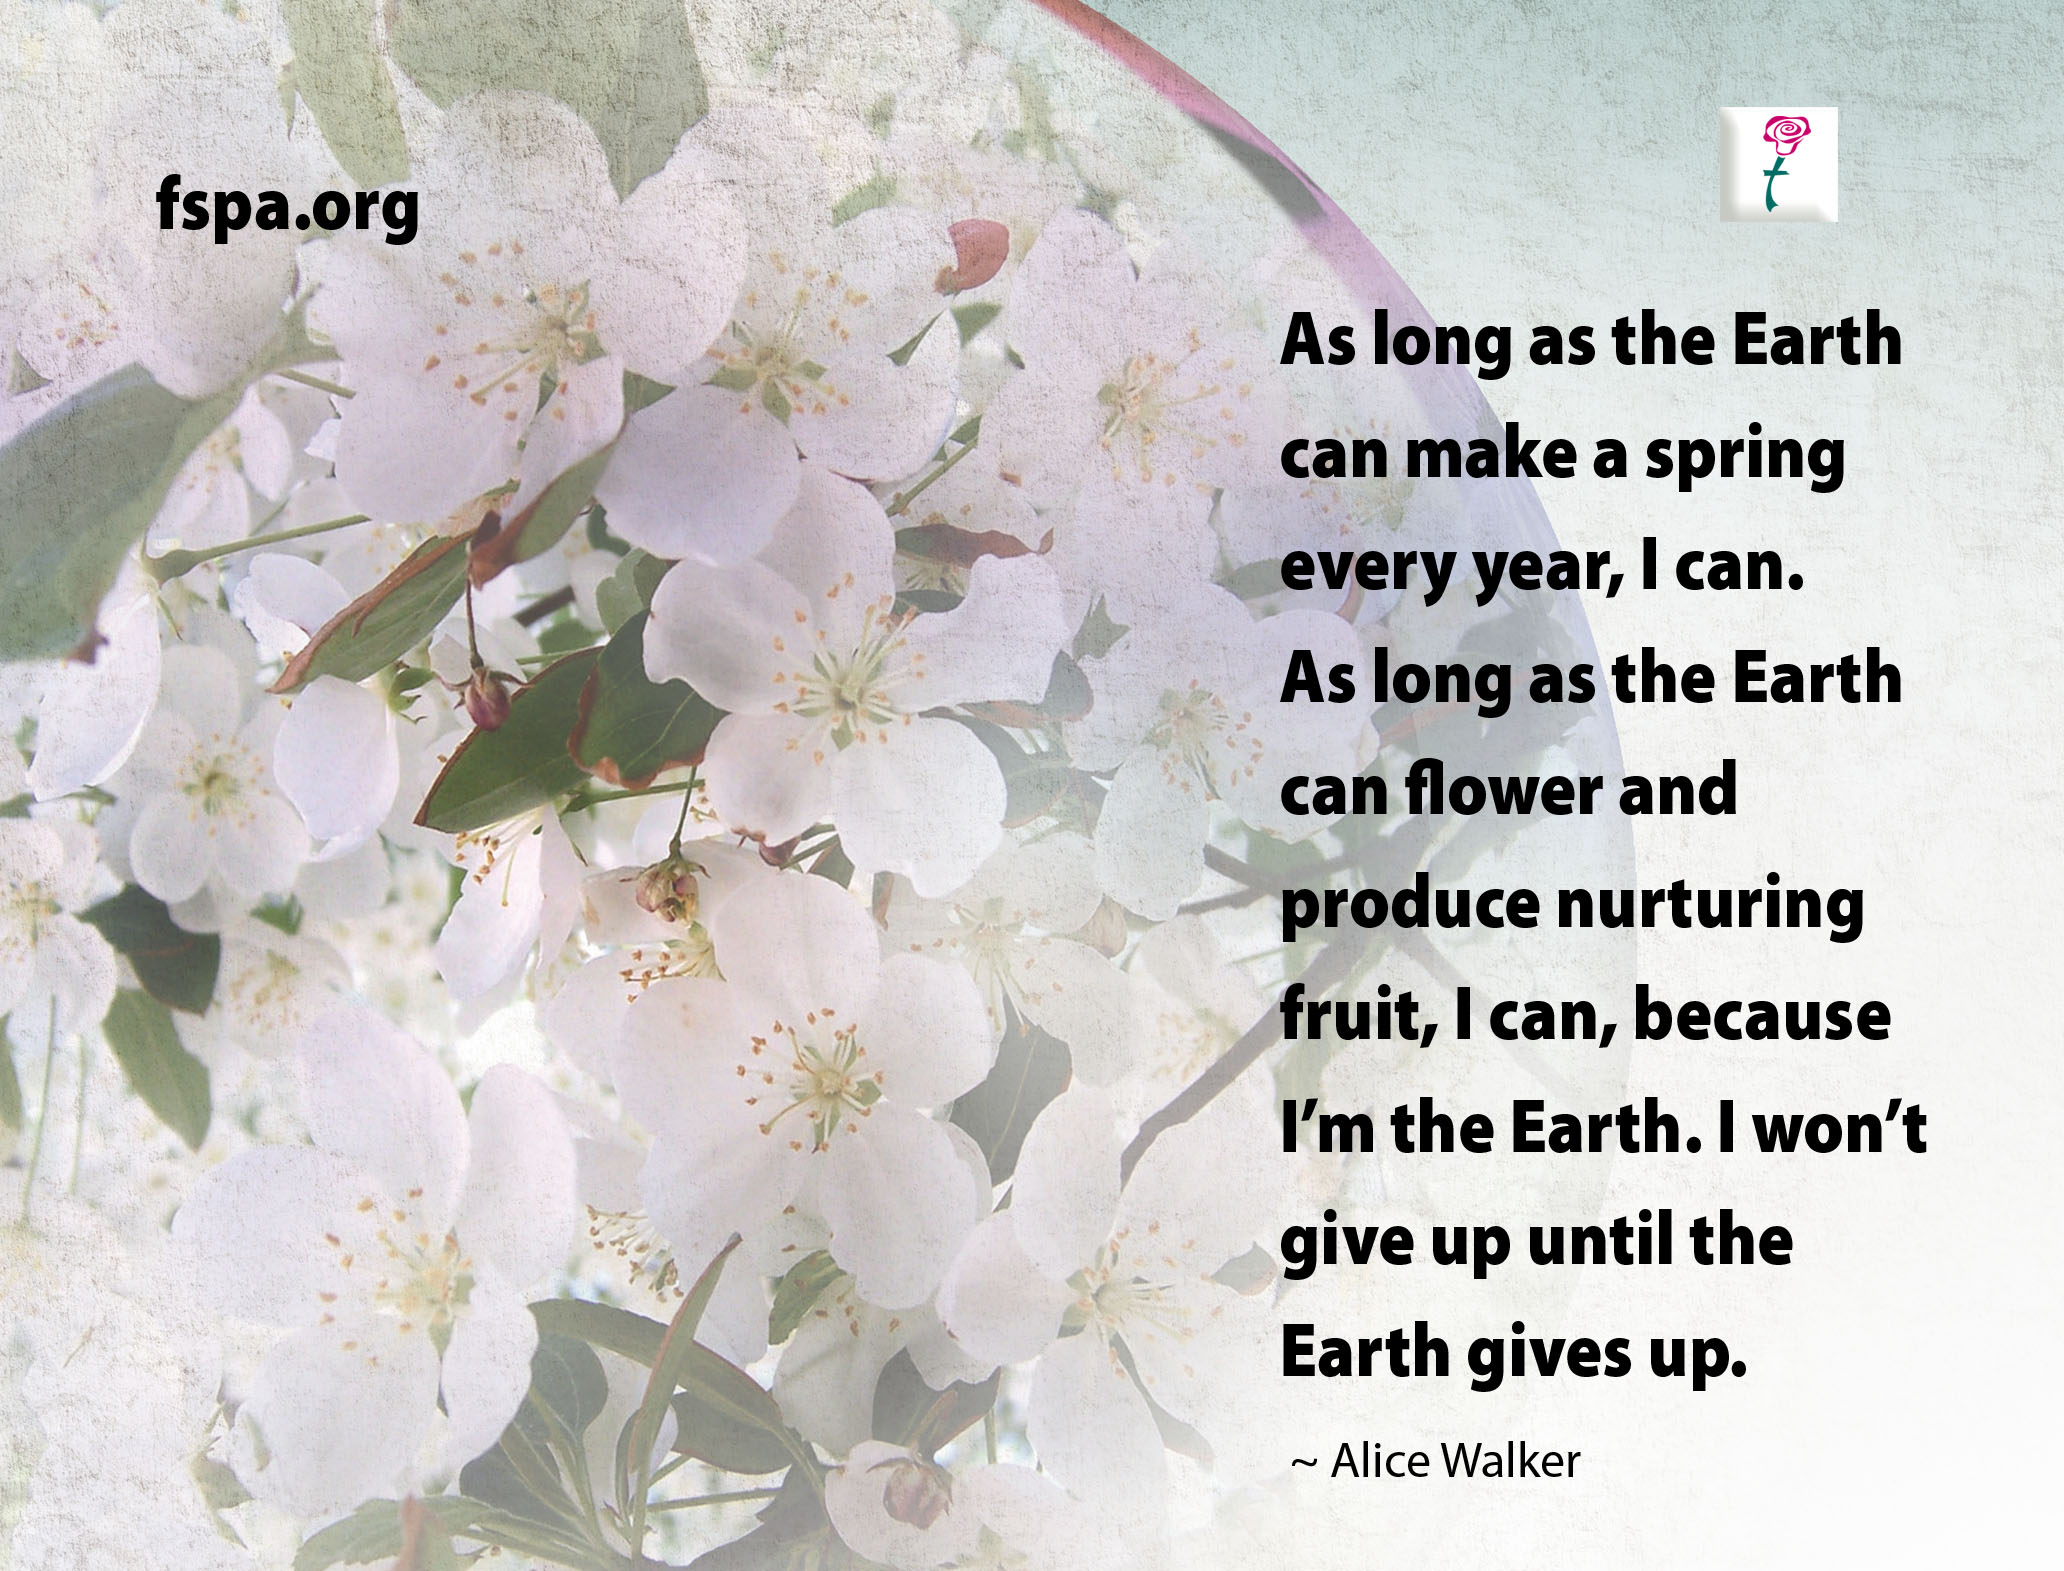 Flowers with Earth Day quote